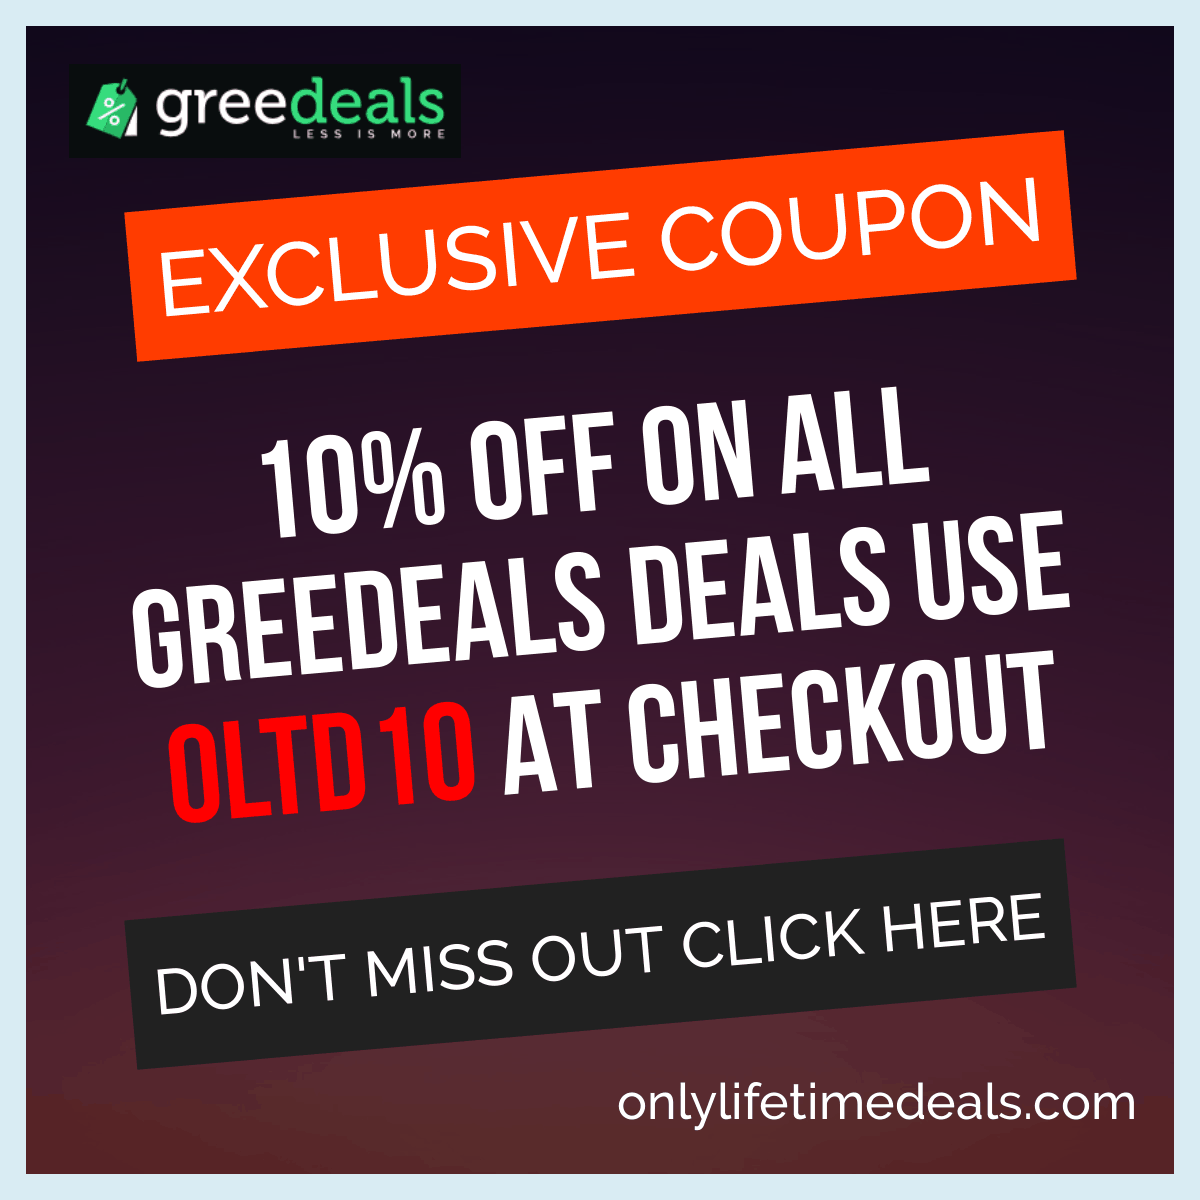 Only Lifetime Deals - Greedeals banner OLTD10